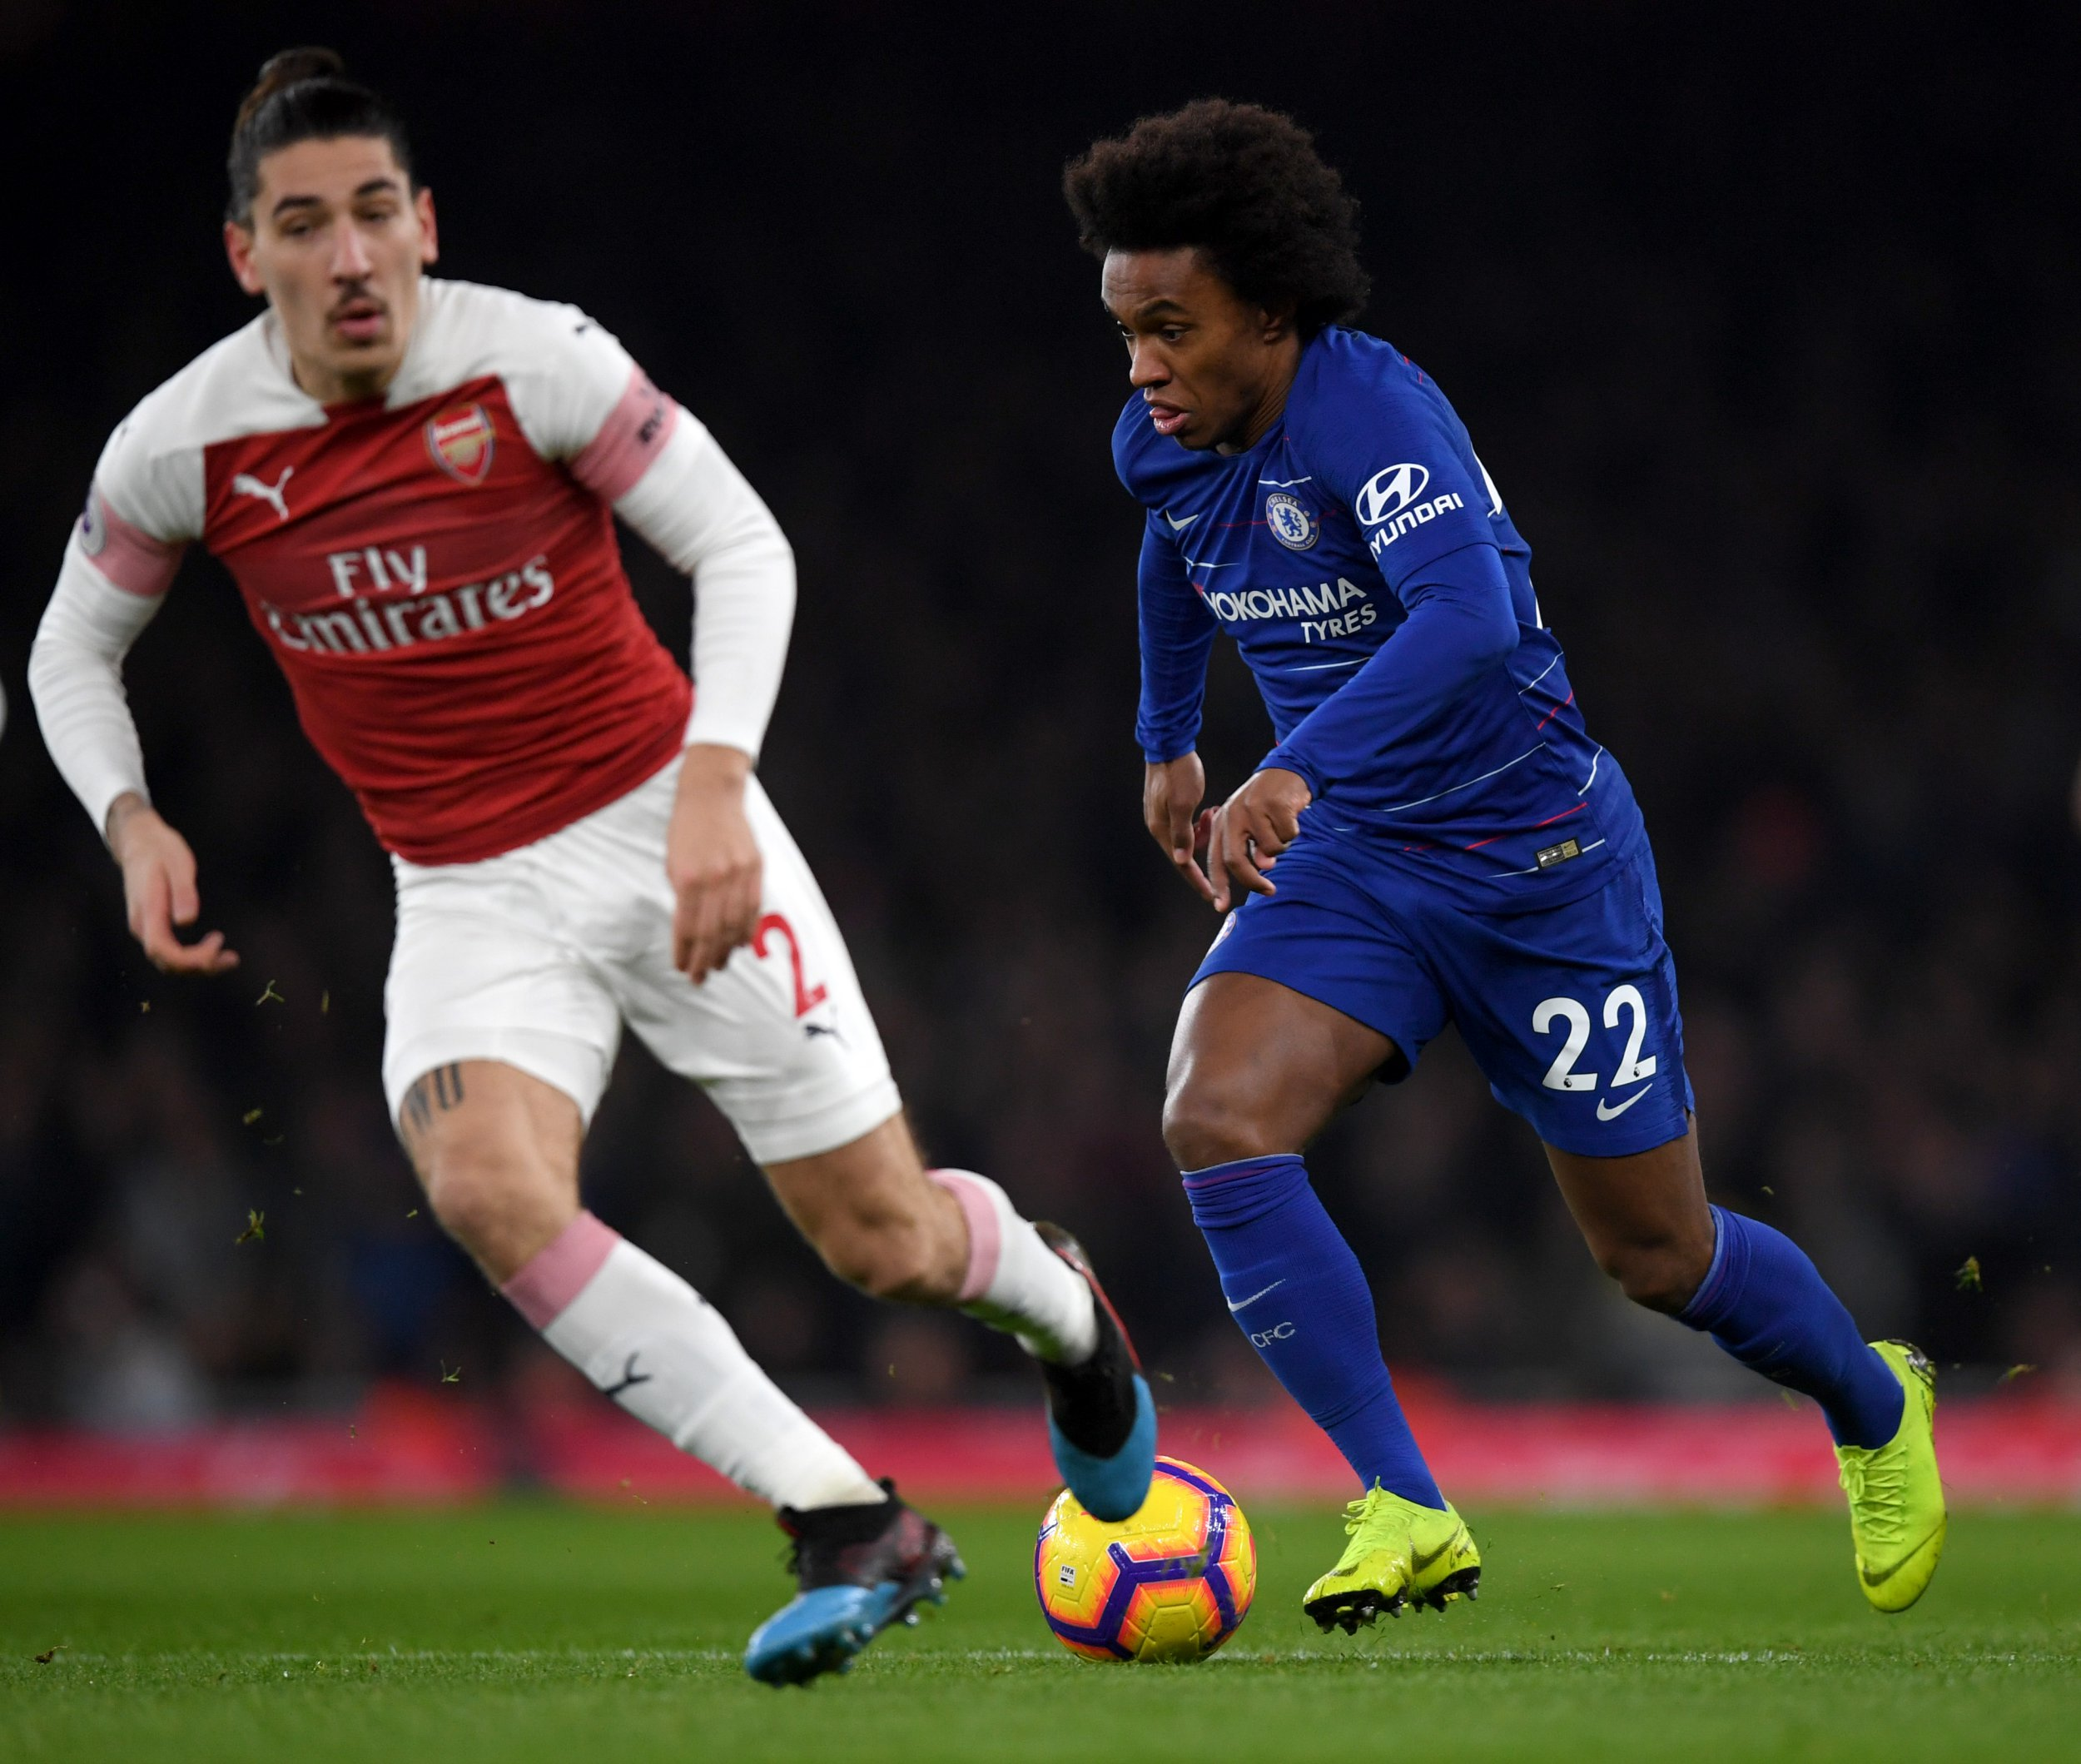 Hector Bellerin suffers serious knee injury during Arsenal v Chelsea